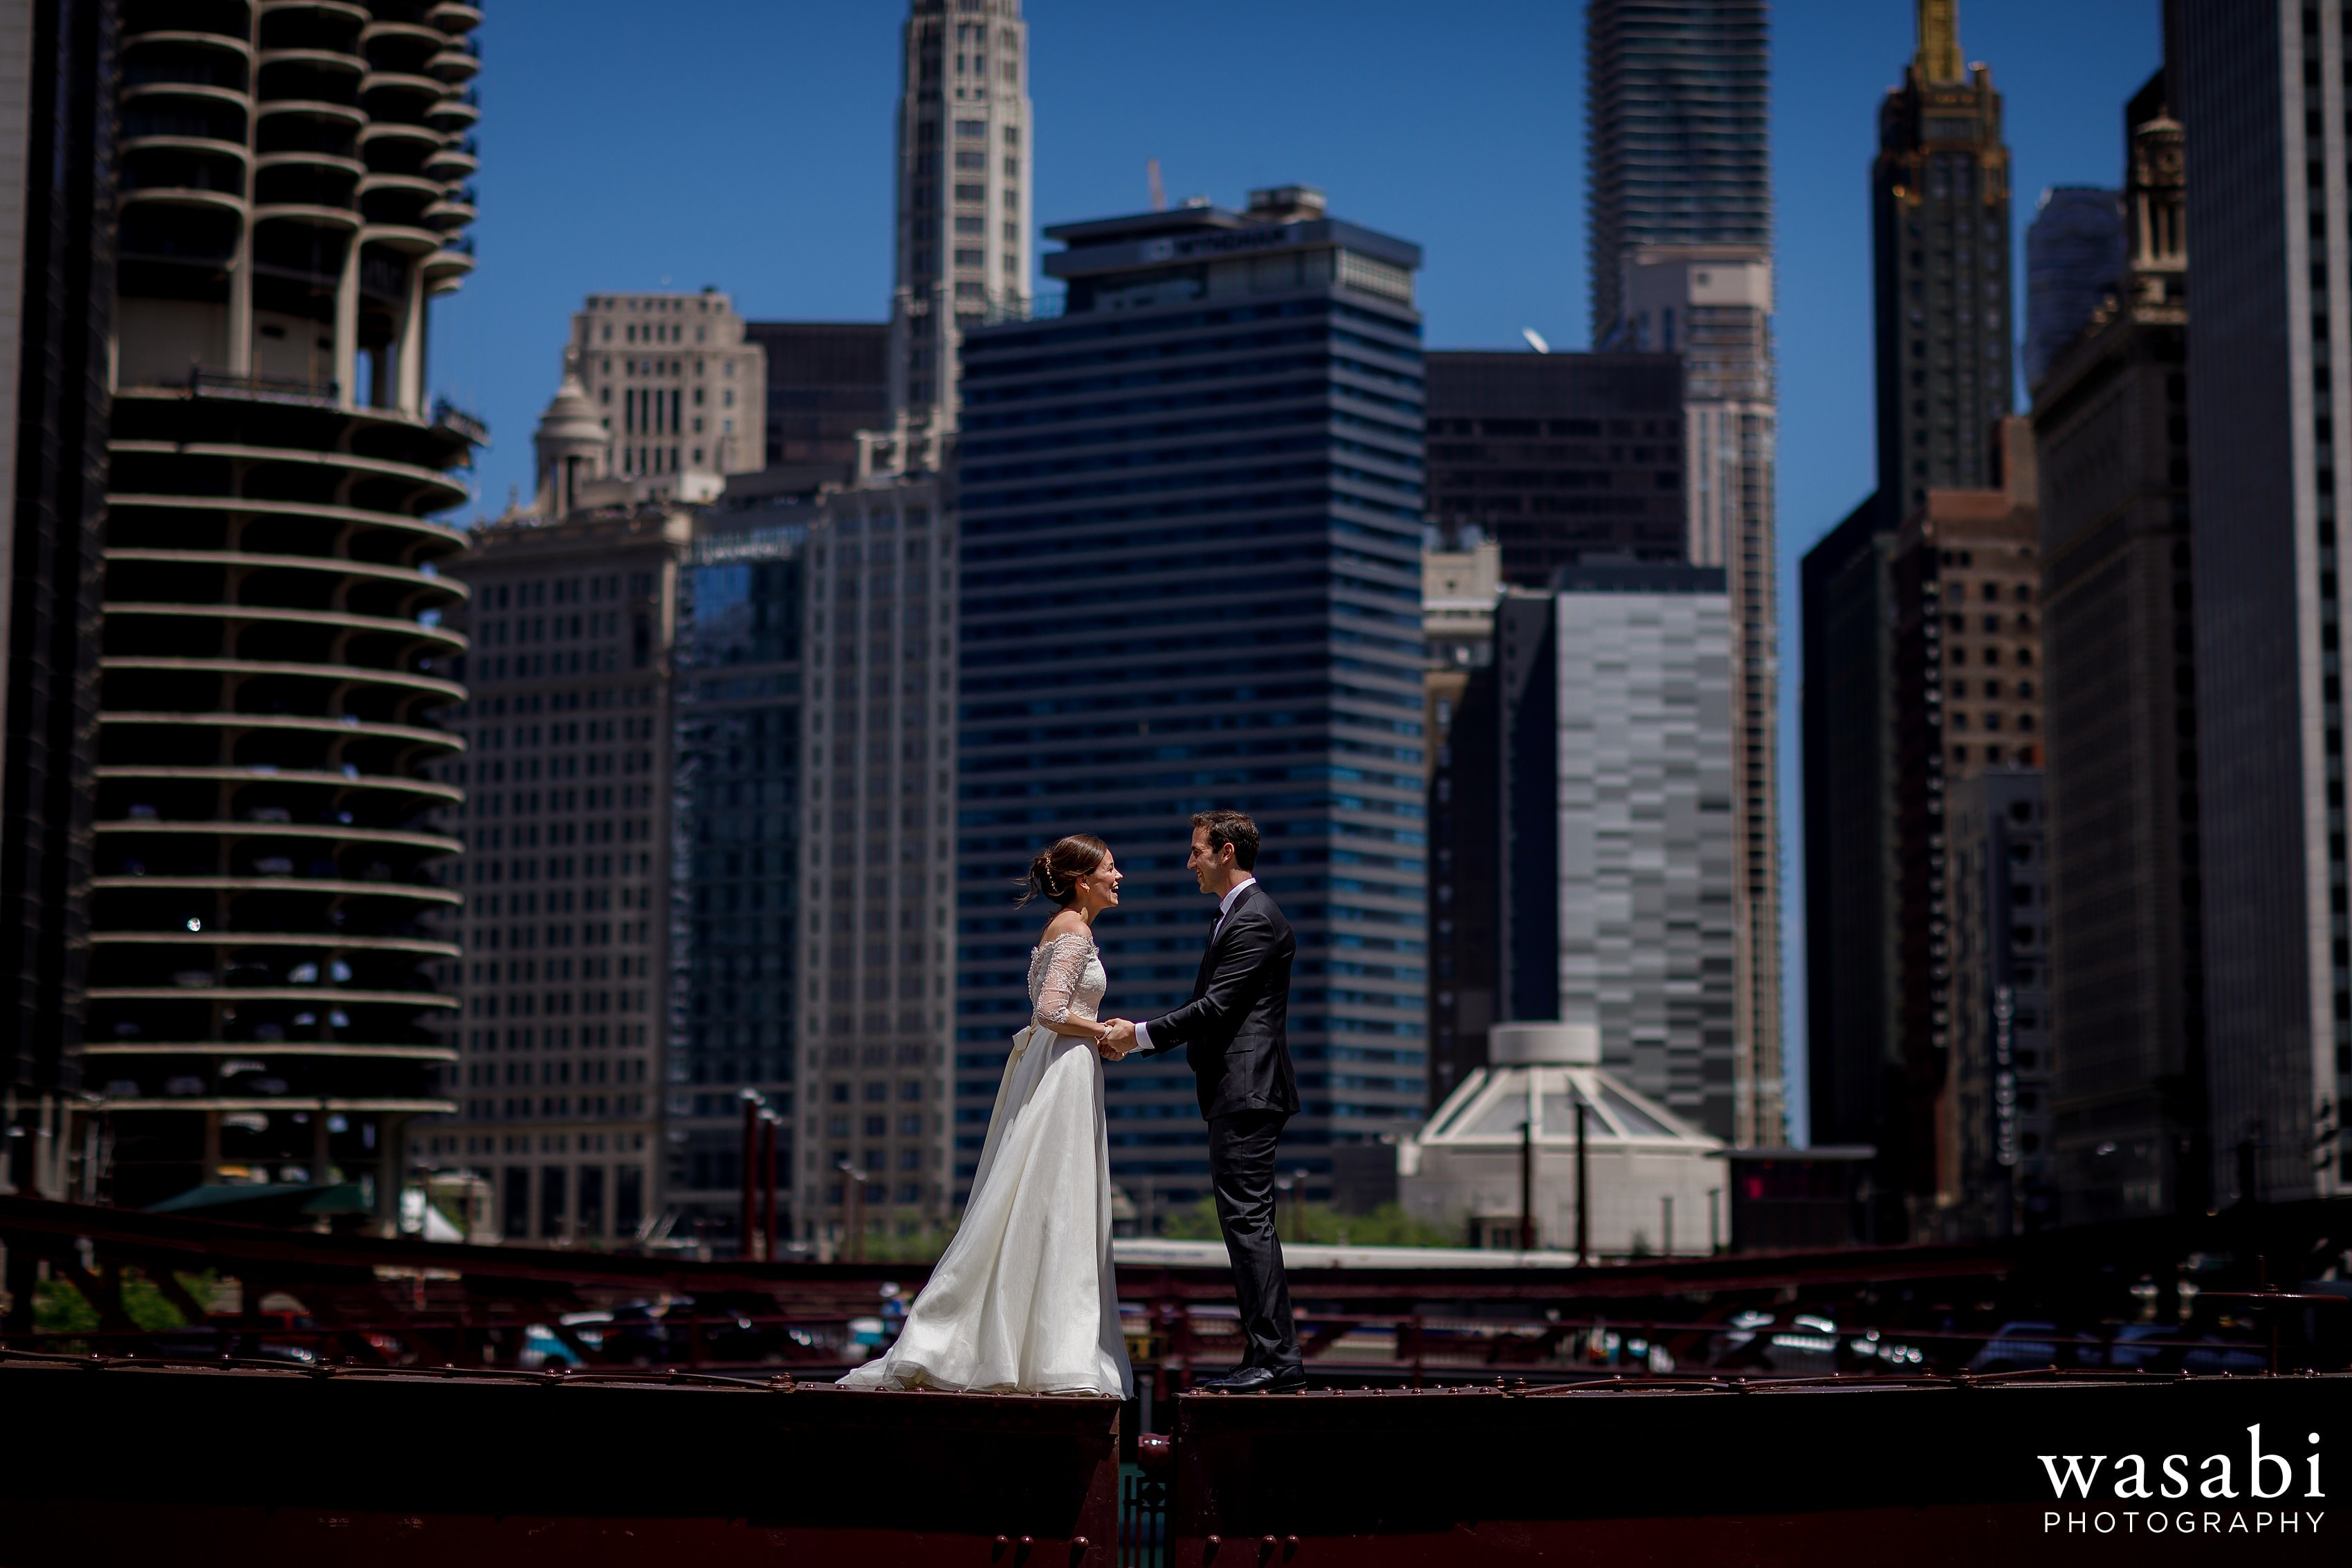 Zoe-and-Justin-pose-for-a-portrait-while-standing-on-top-of-the-LaSalle-Street-Bridge-with-the-Chicago-skyline-in-the-background-12